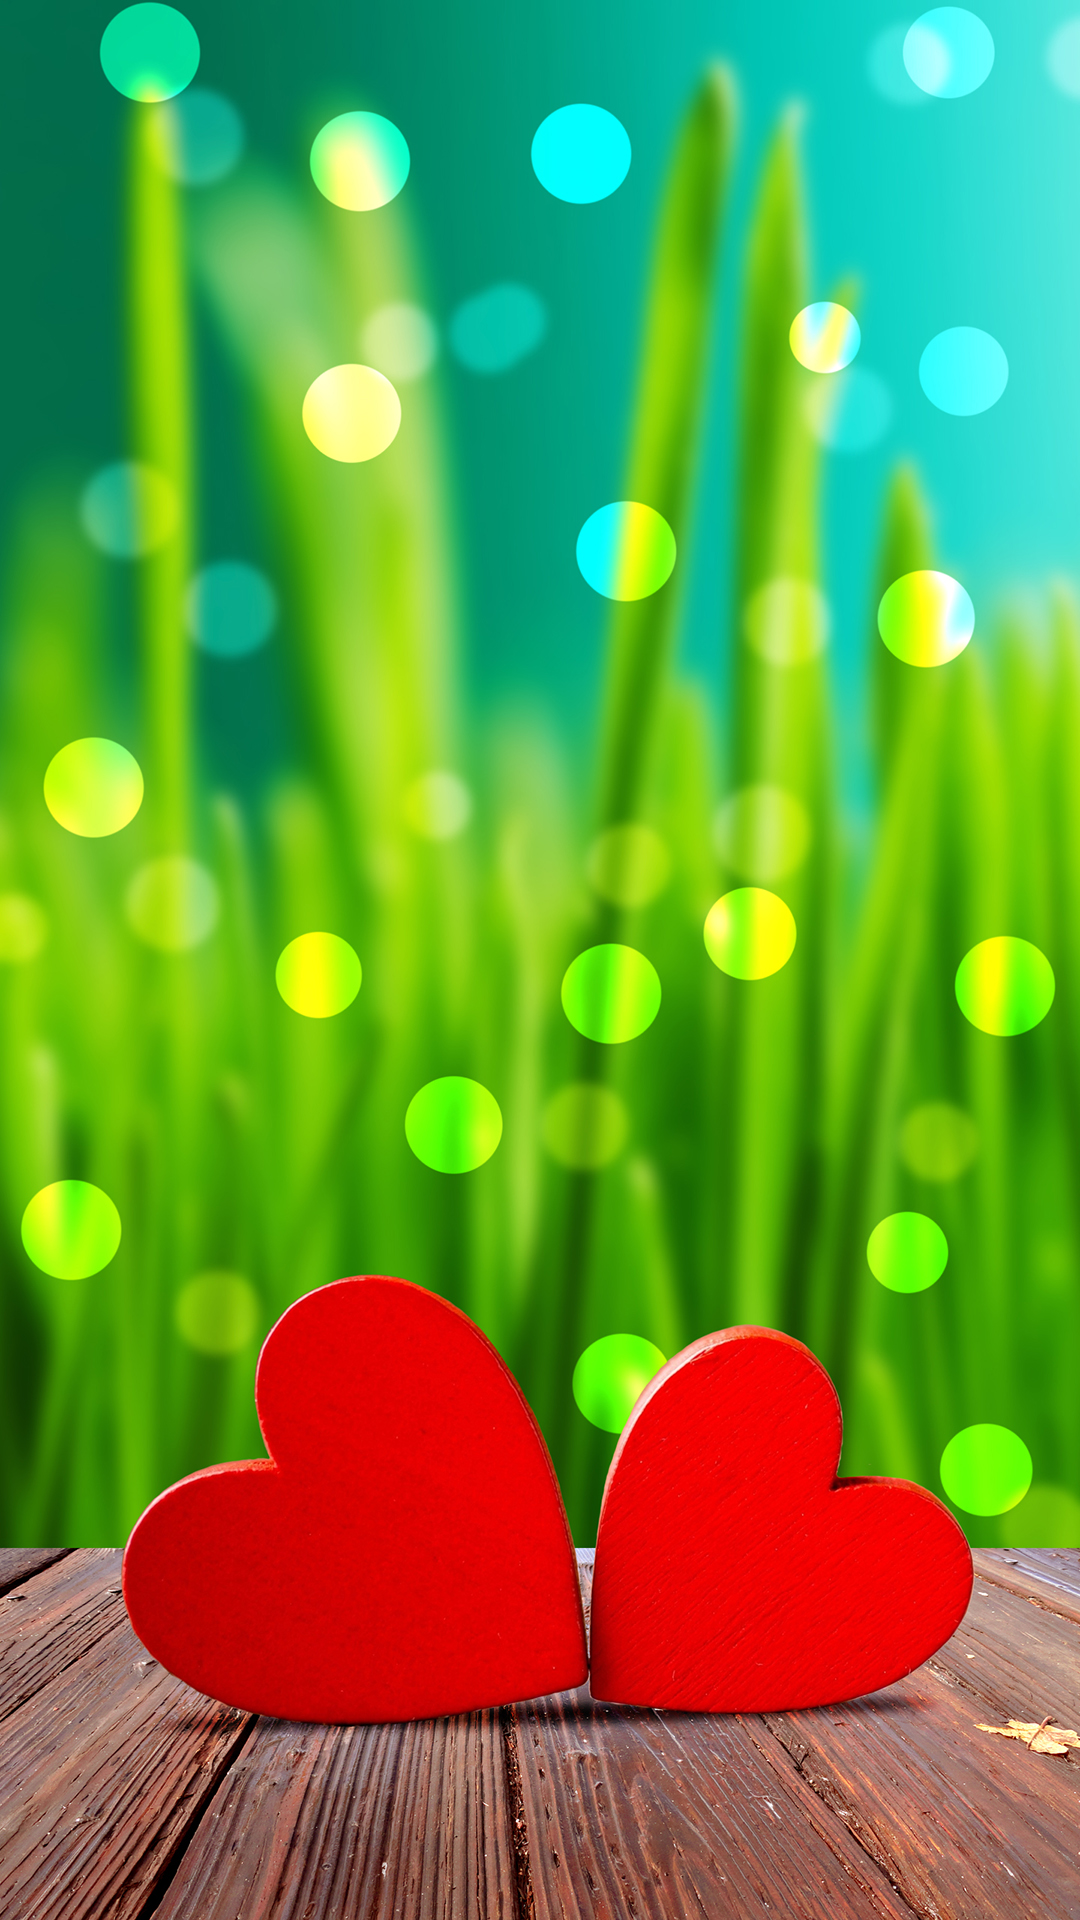 cute Love Wallpaper iPhone 6S Plus by mrjok2016 on DeviantArt